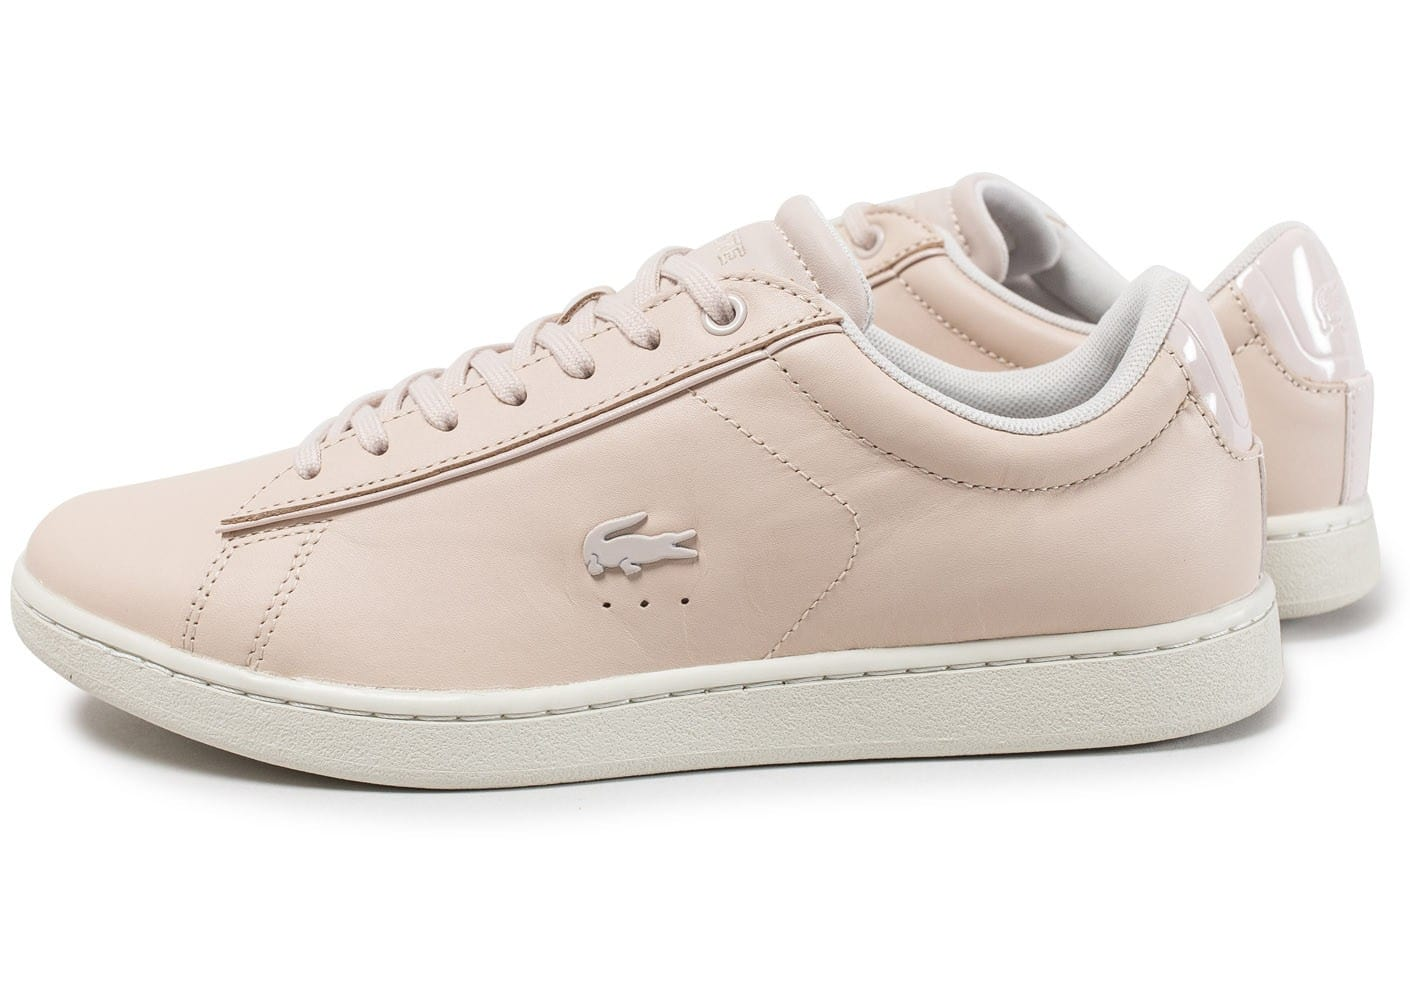 Chausport Femme 417 Evo Lacoste Plans Bons W Chaussures Rose Carnaby 8zSAqw